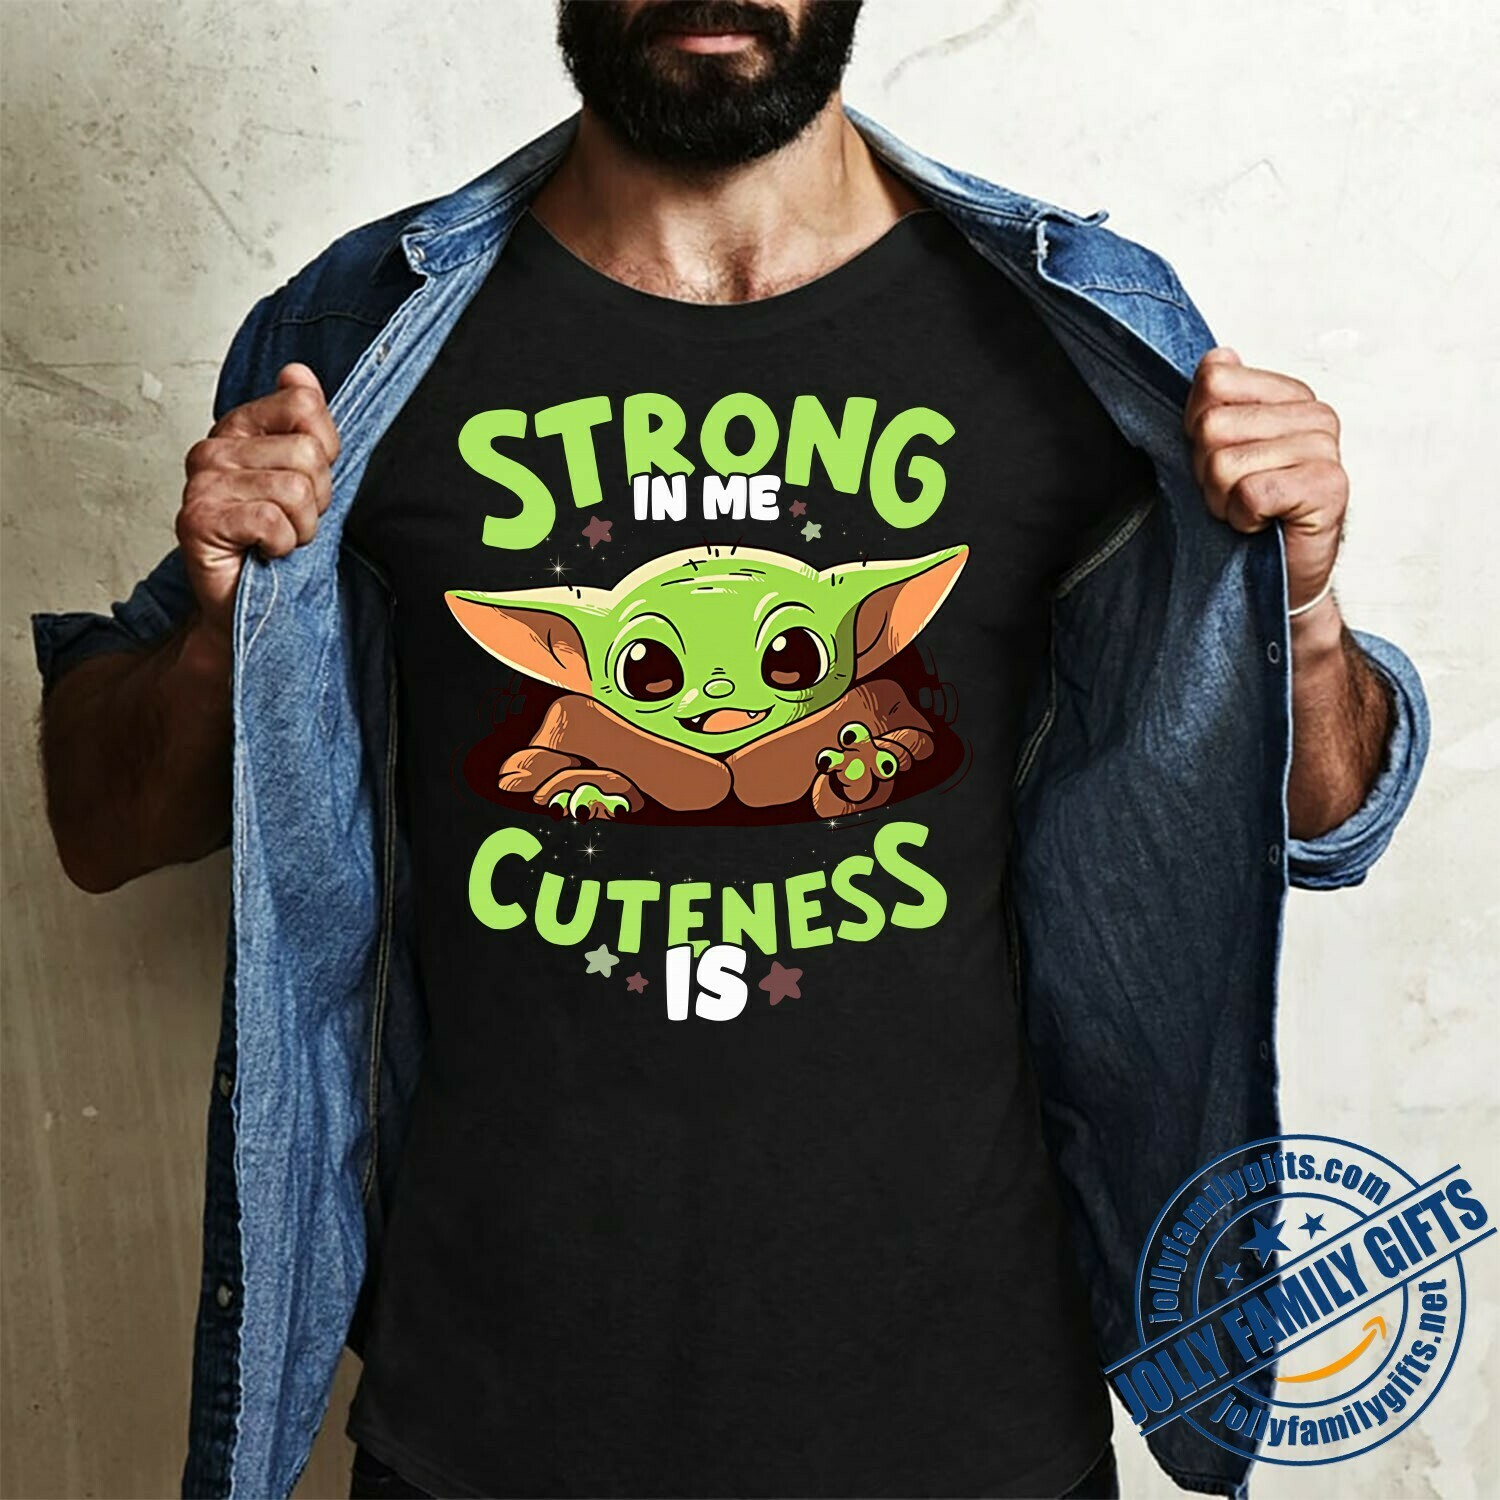 Baby Yoda The Mandalorian with death Star Wars Movie Yoda Strong in Me Cuteness is fan Gift  T-Shirt Hoodie Sweatshirt Sweater Tee Kids Youth Gifts Jolly Family Gifts